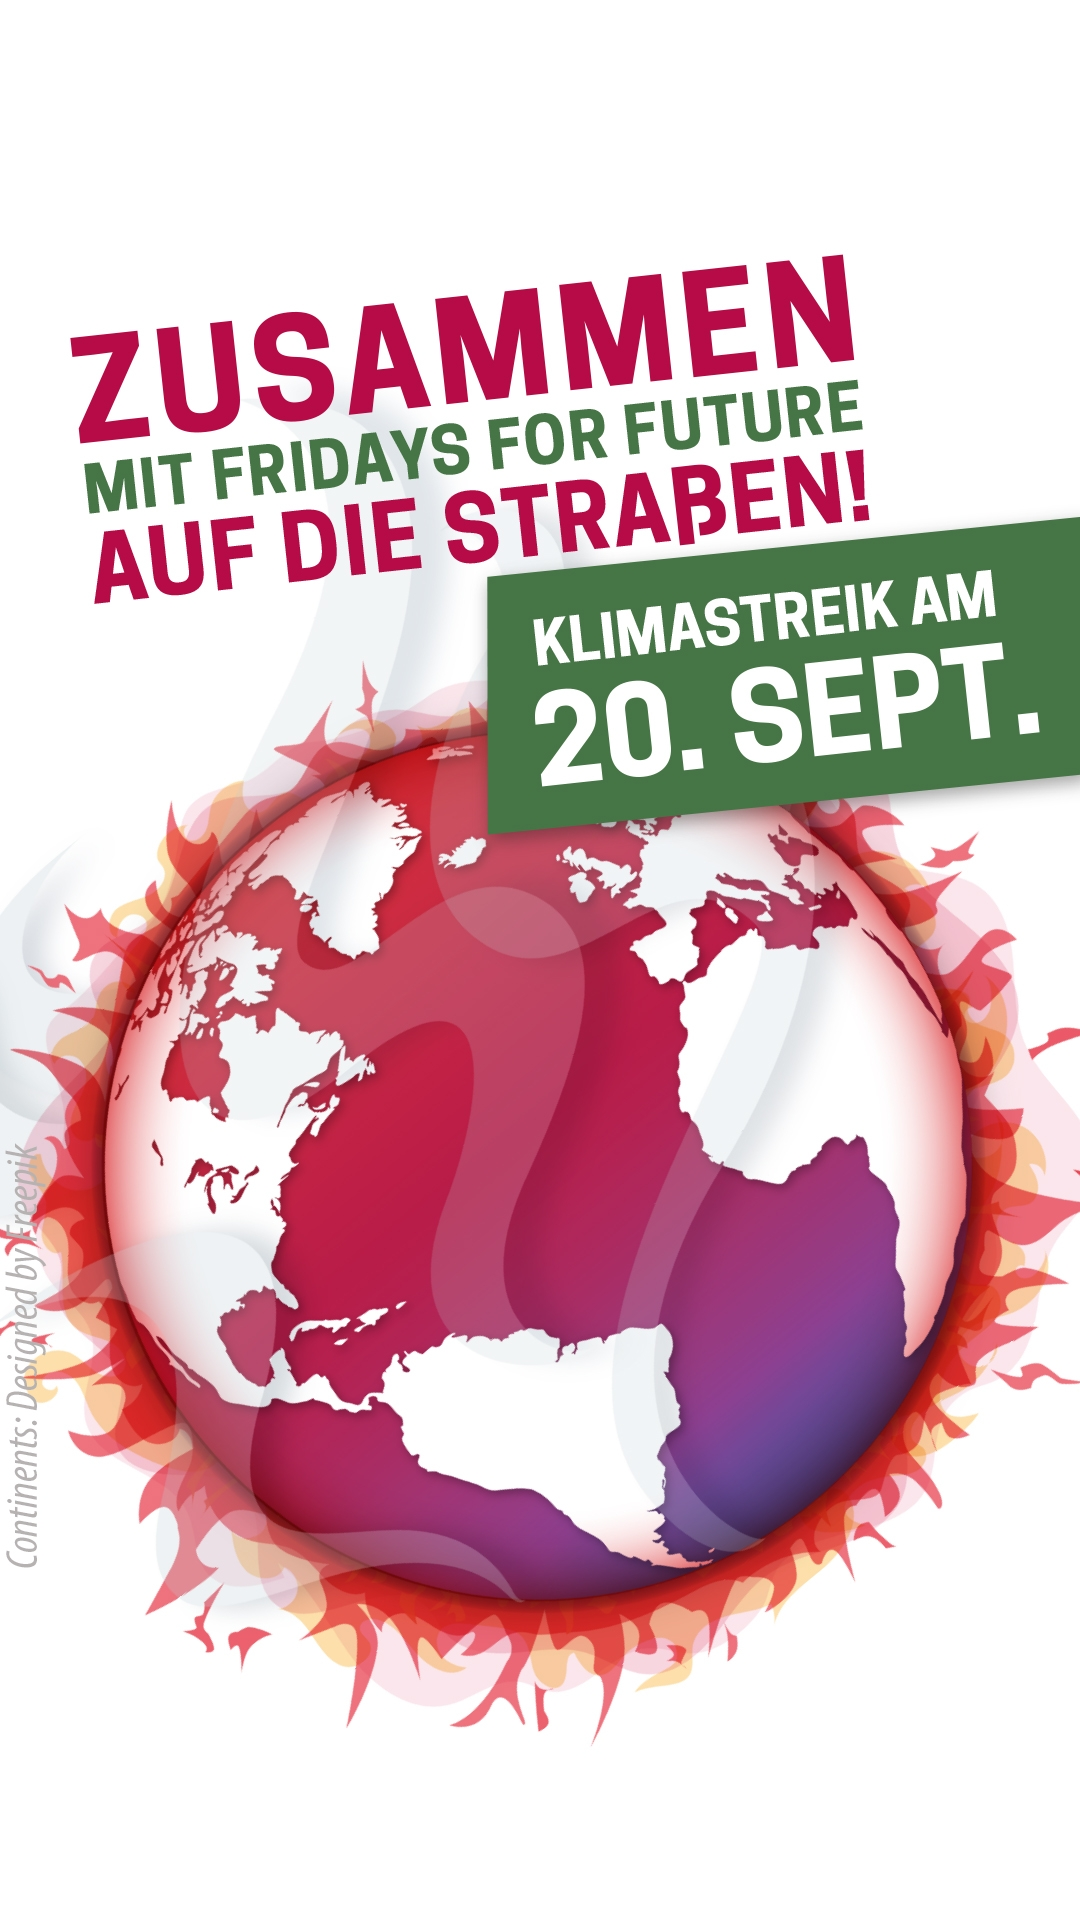 Globaler Friday For Future Streik @ Global, u.a. Hagen, Iserlohn, Dortmund, evtl. Lüdenscheid